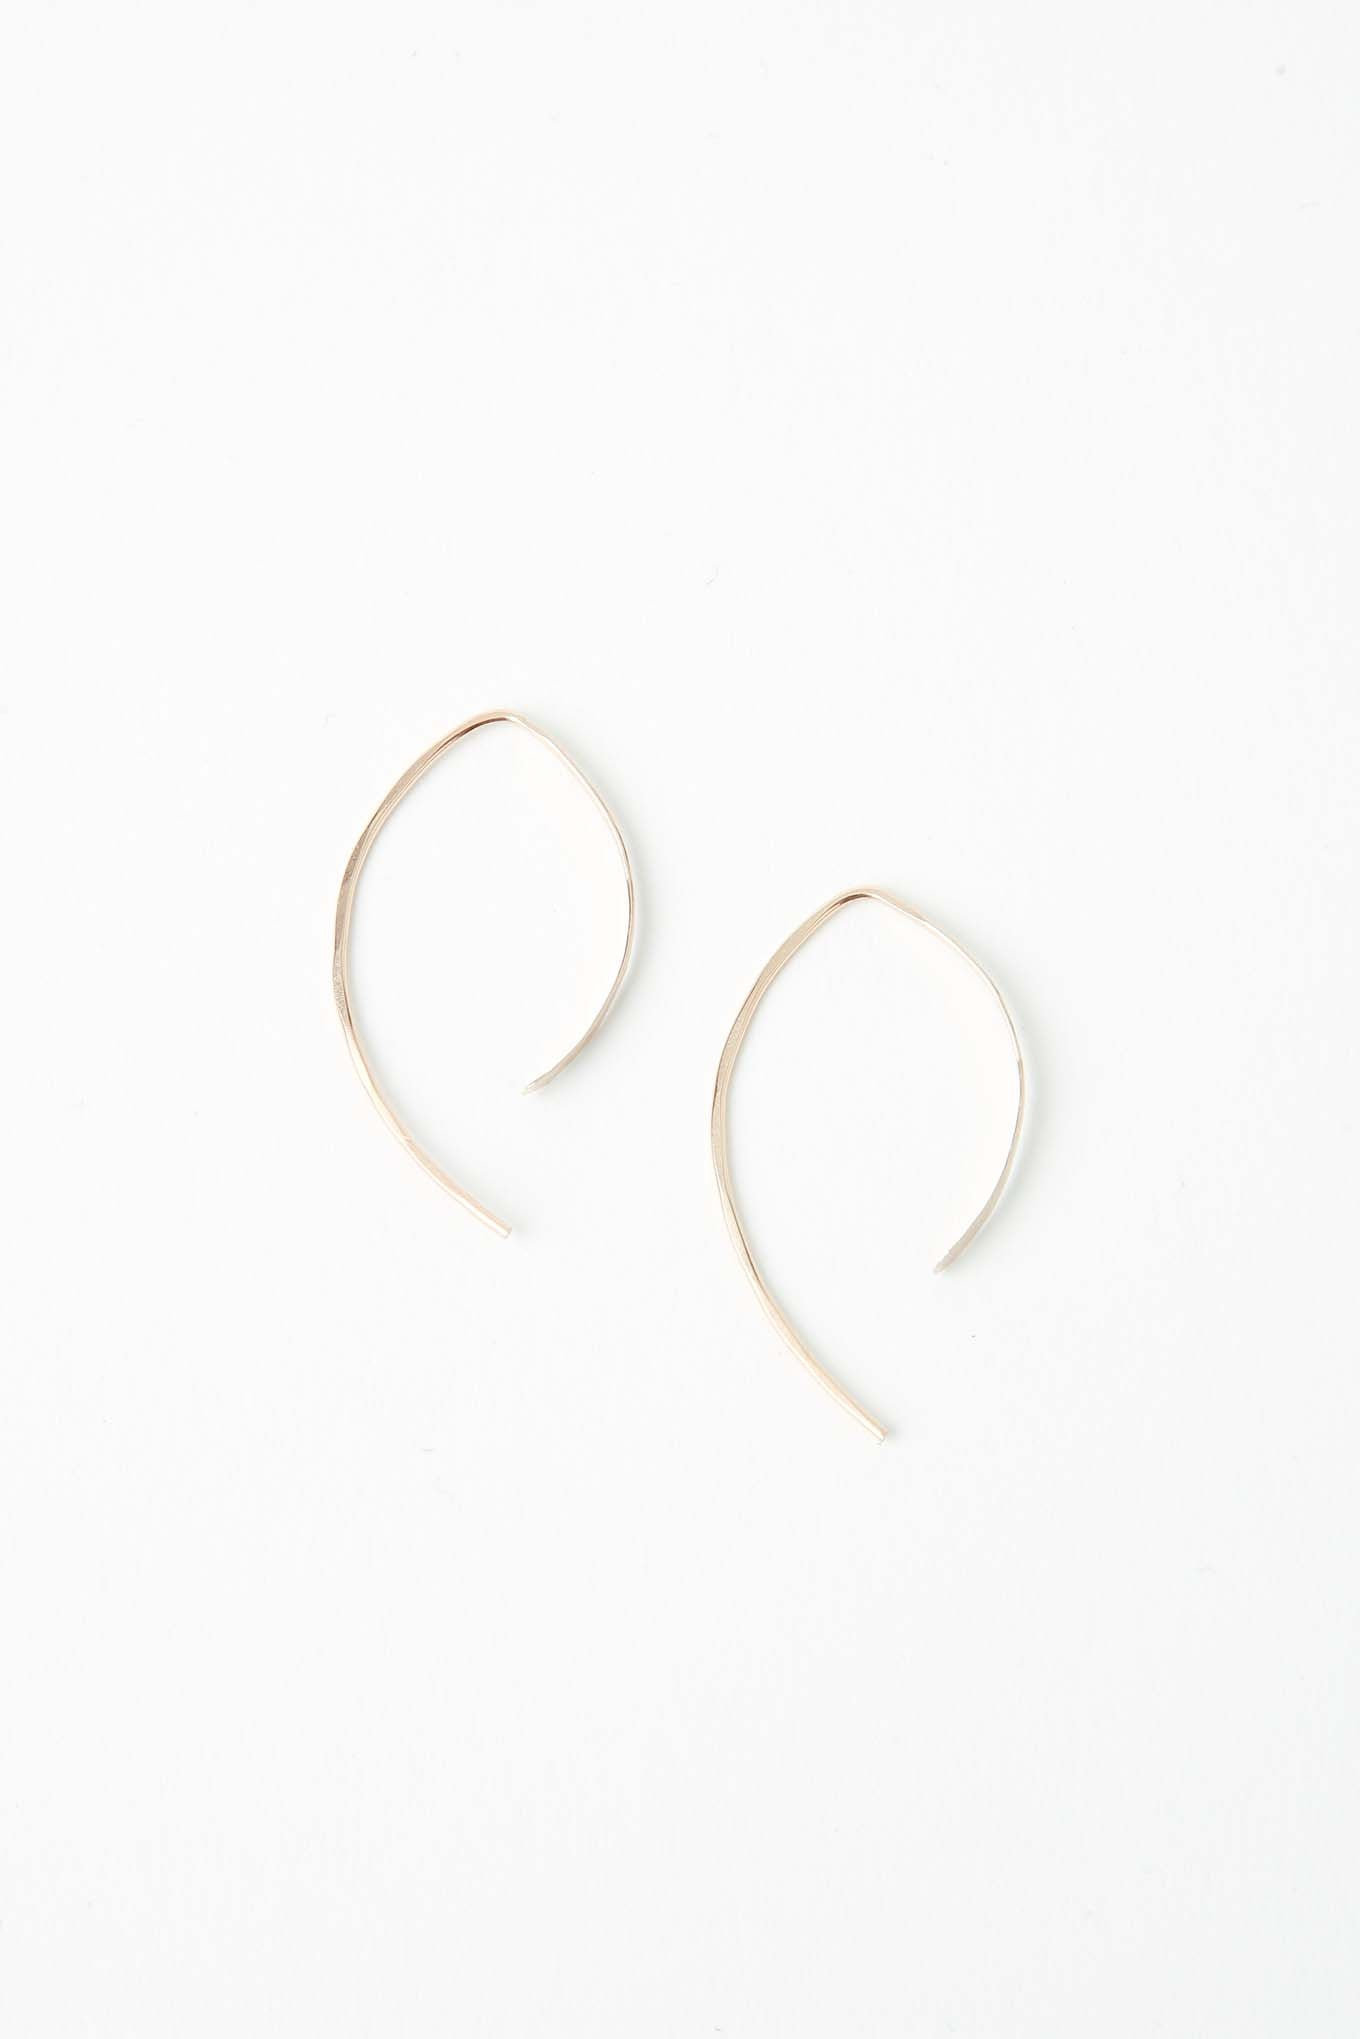 "Melissa Joy Manning / 1"" Wishbone Hoops"